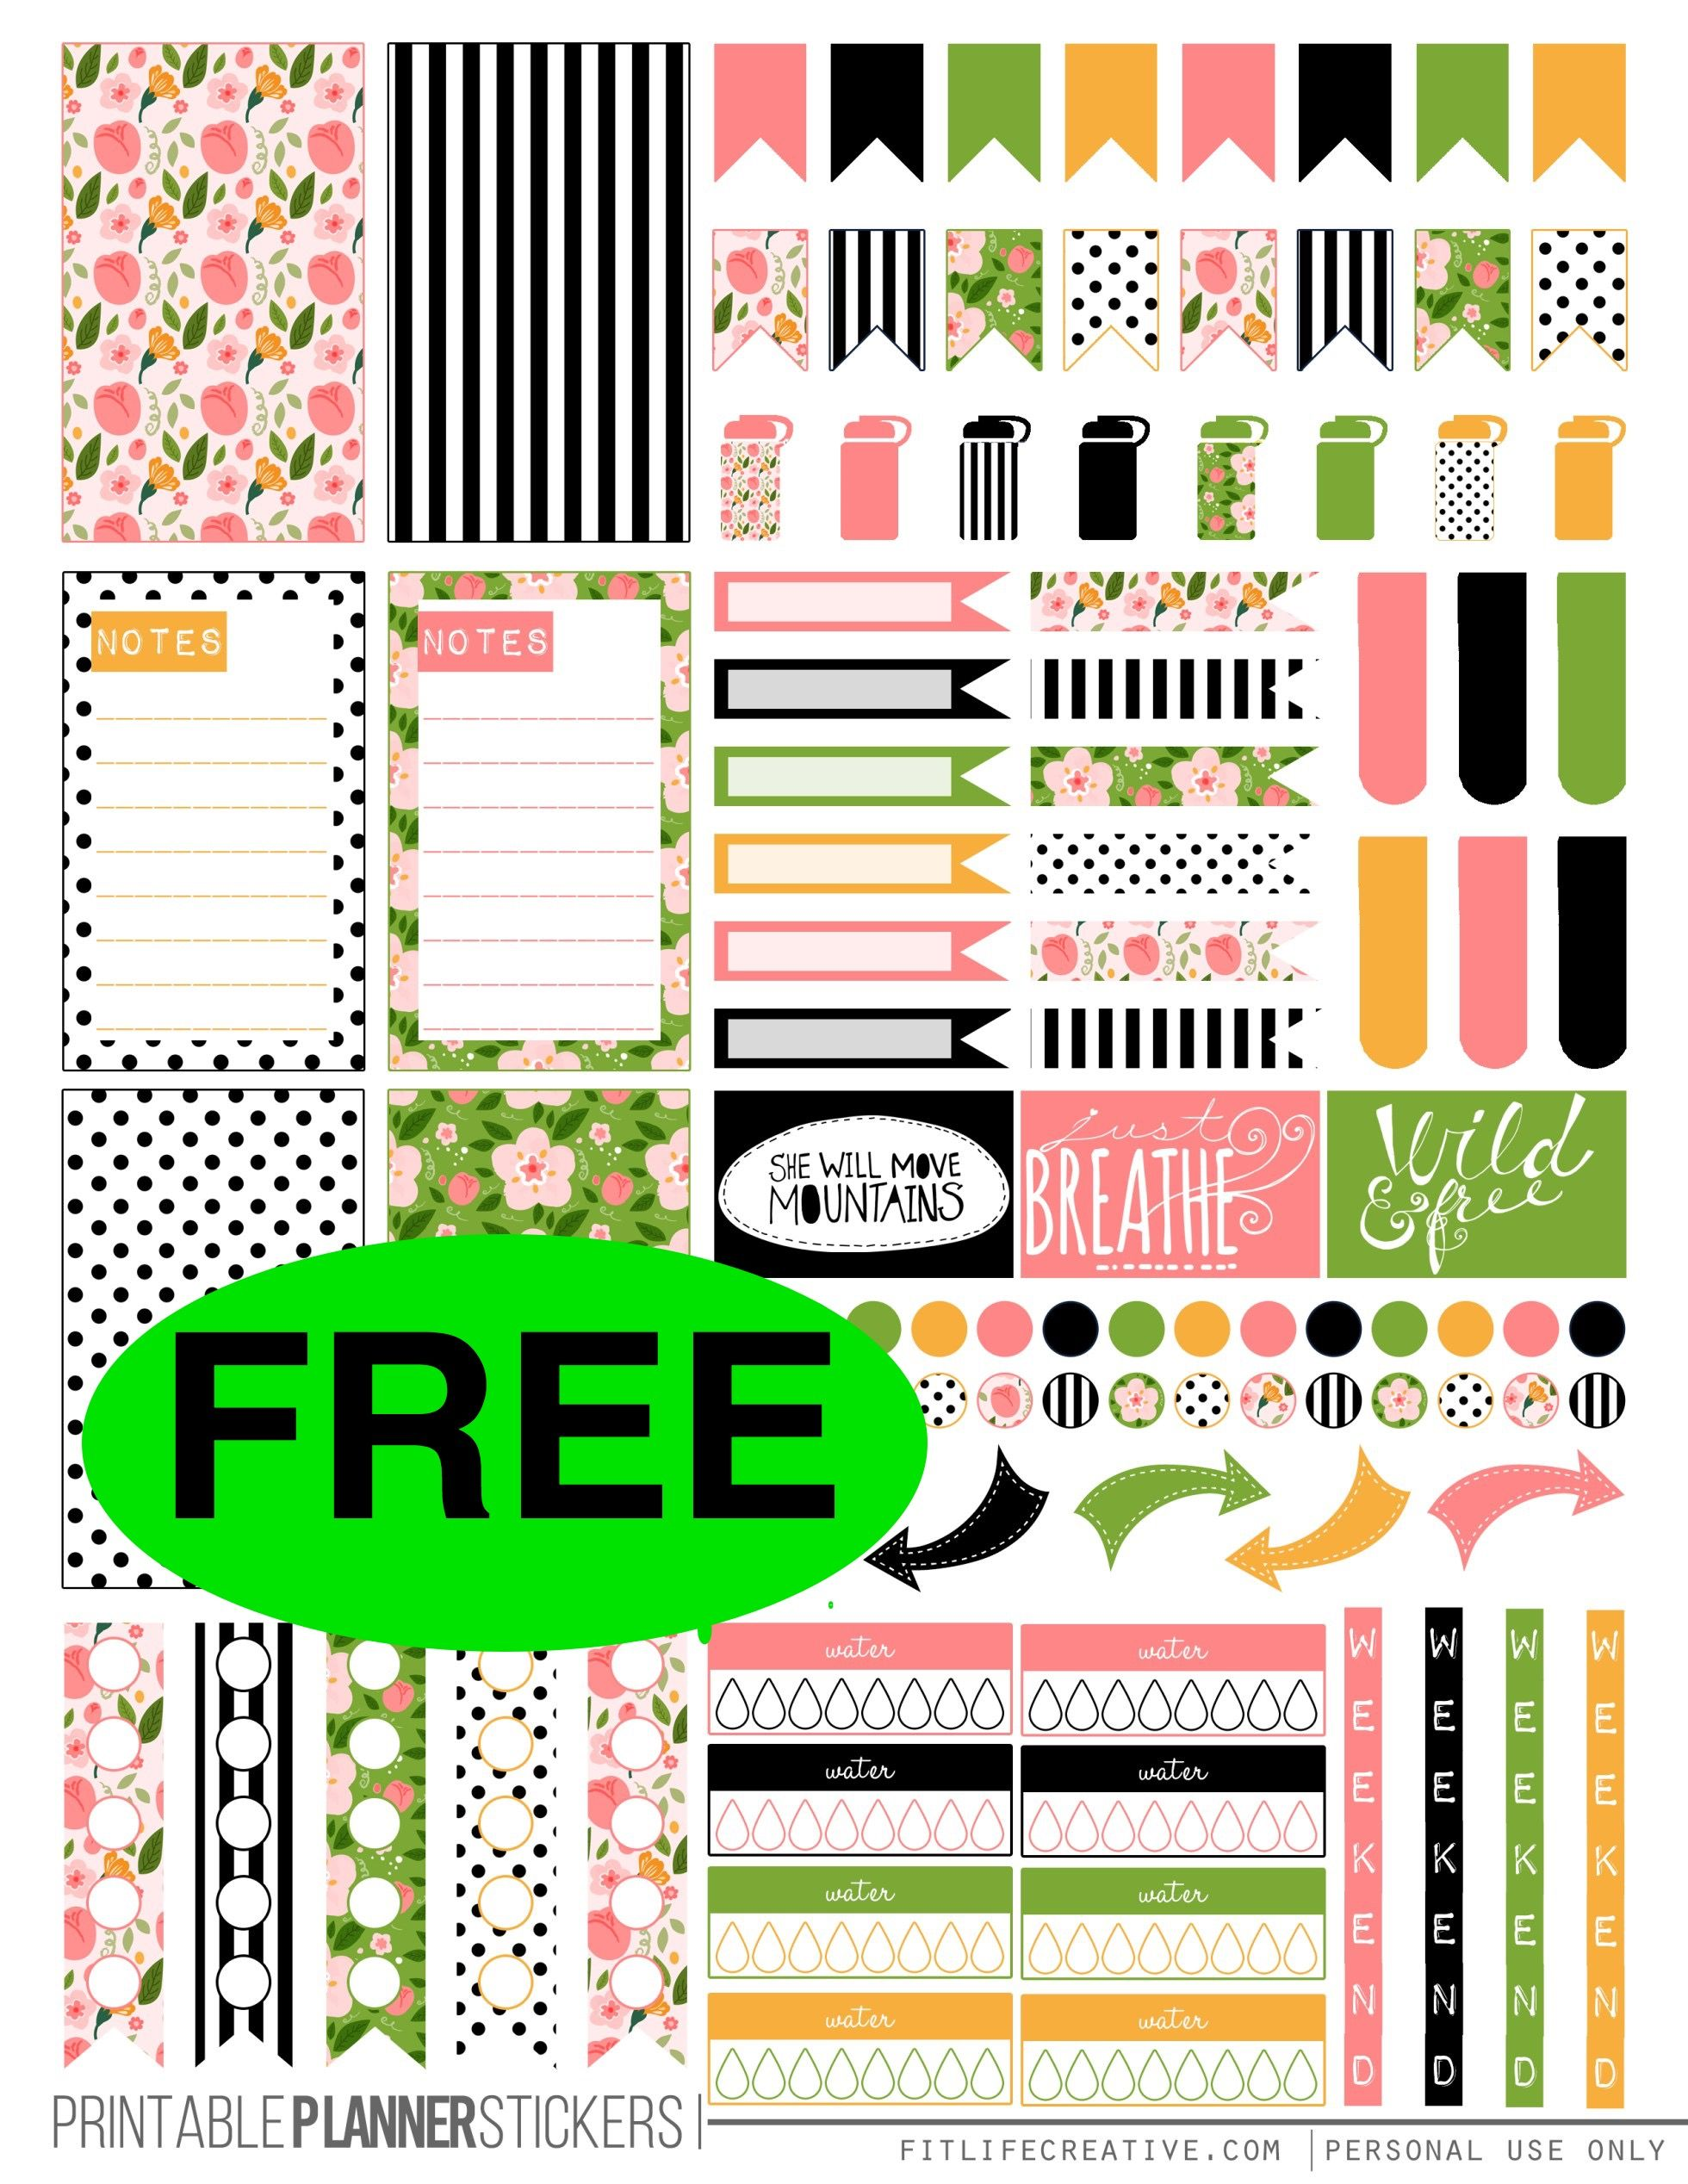 FREE Spring Planner Printable Stickers!